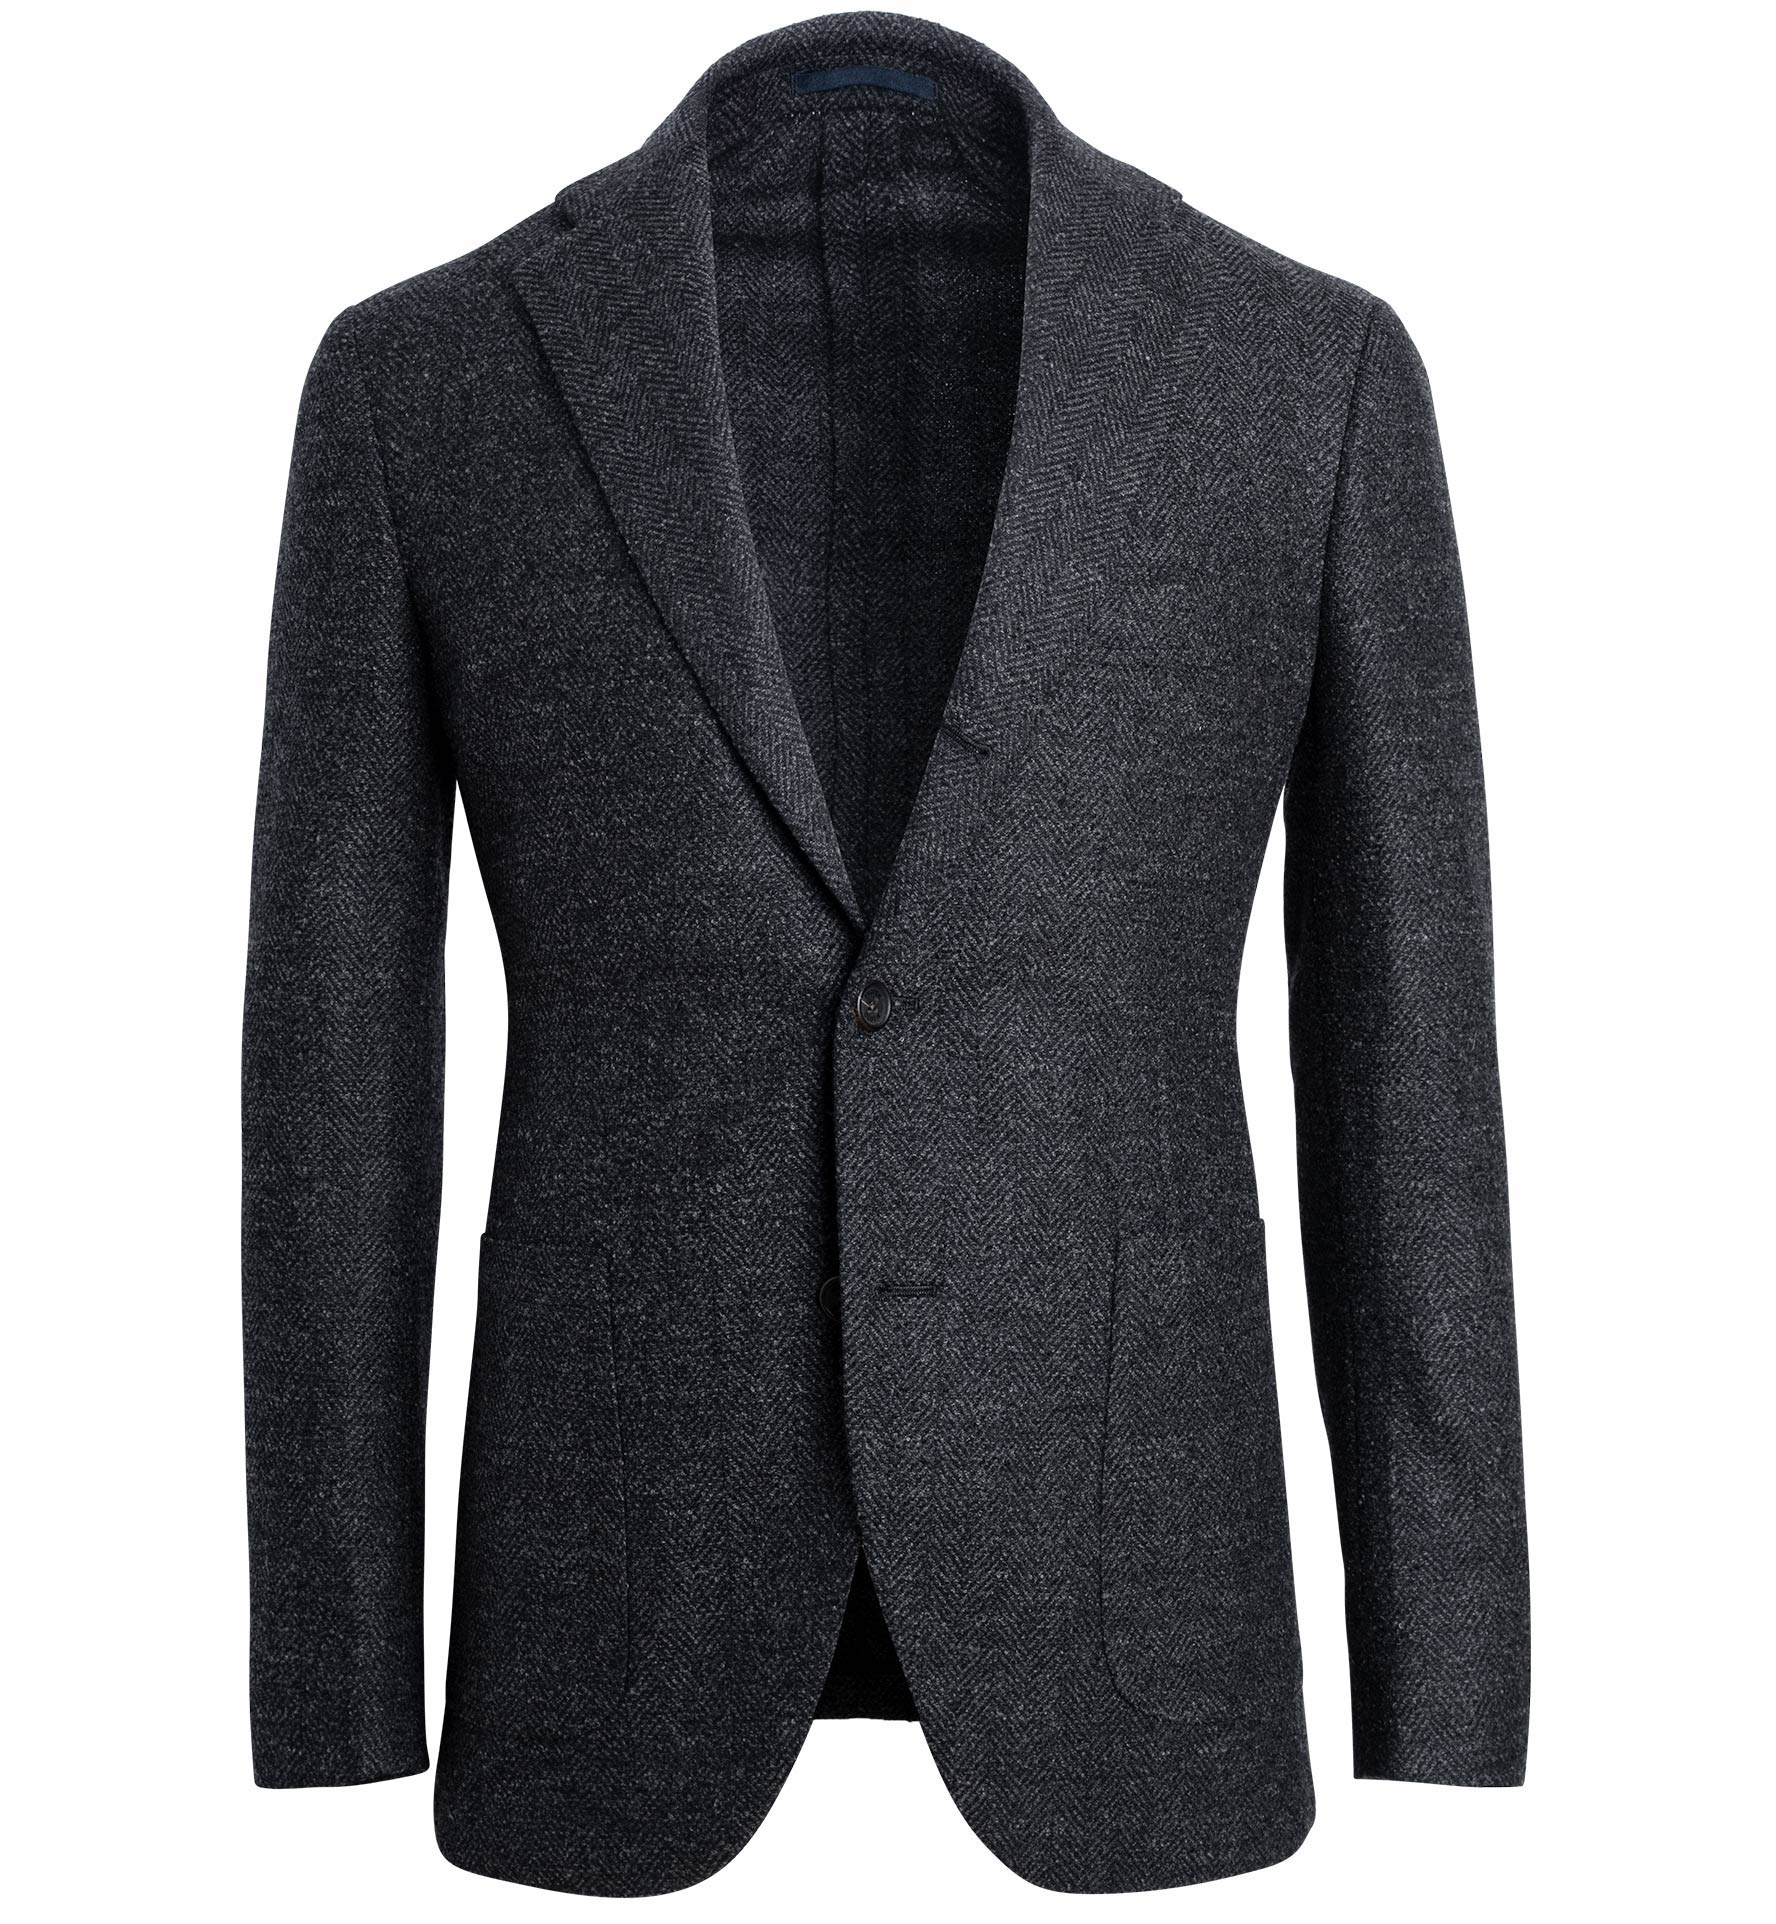 Zoom Image of Bedford Charcoal Herringbone Jacket